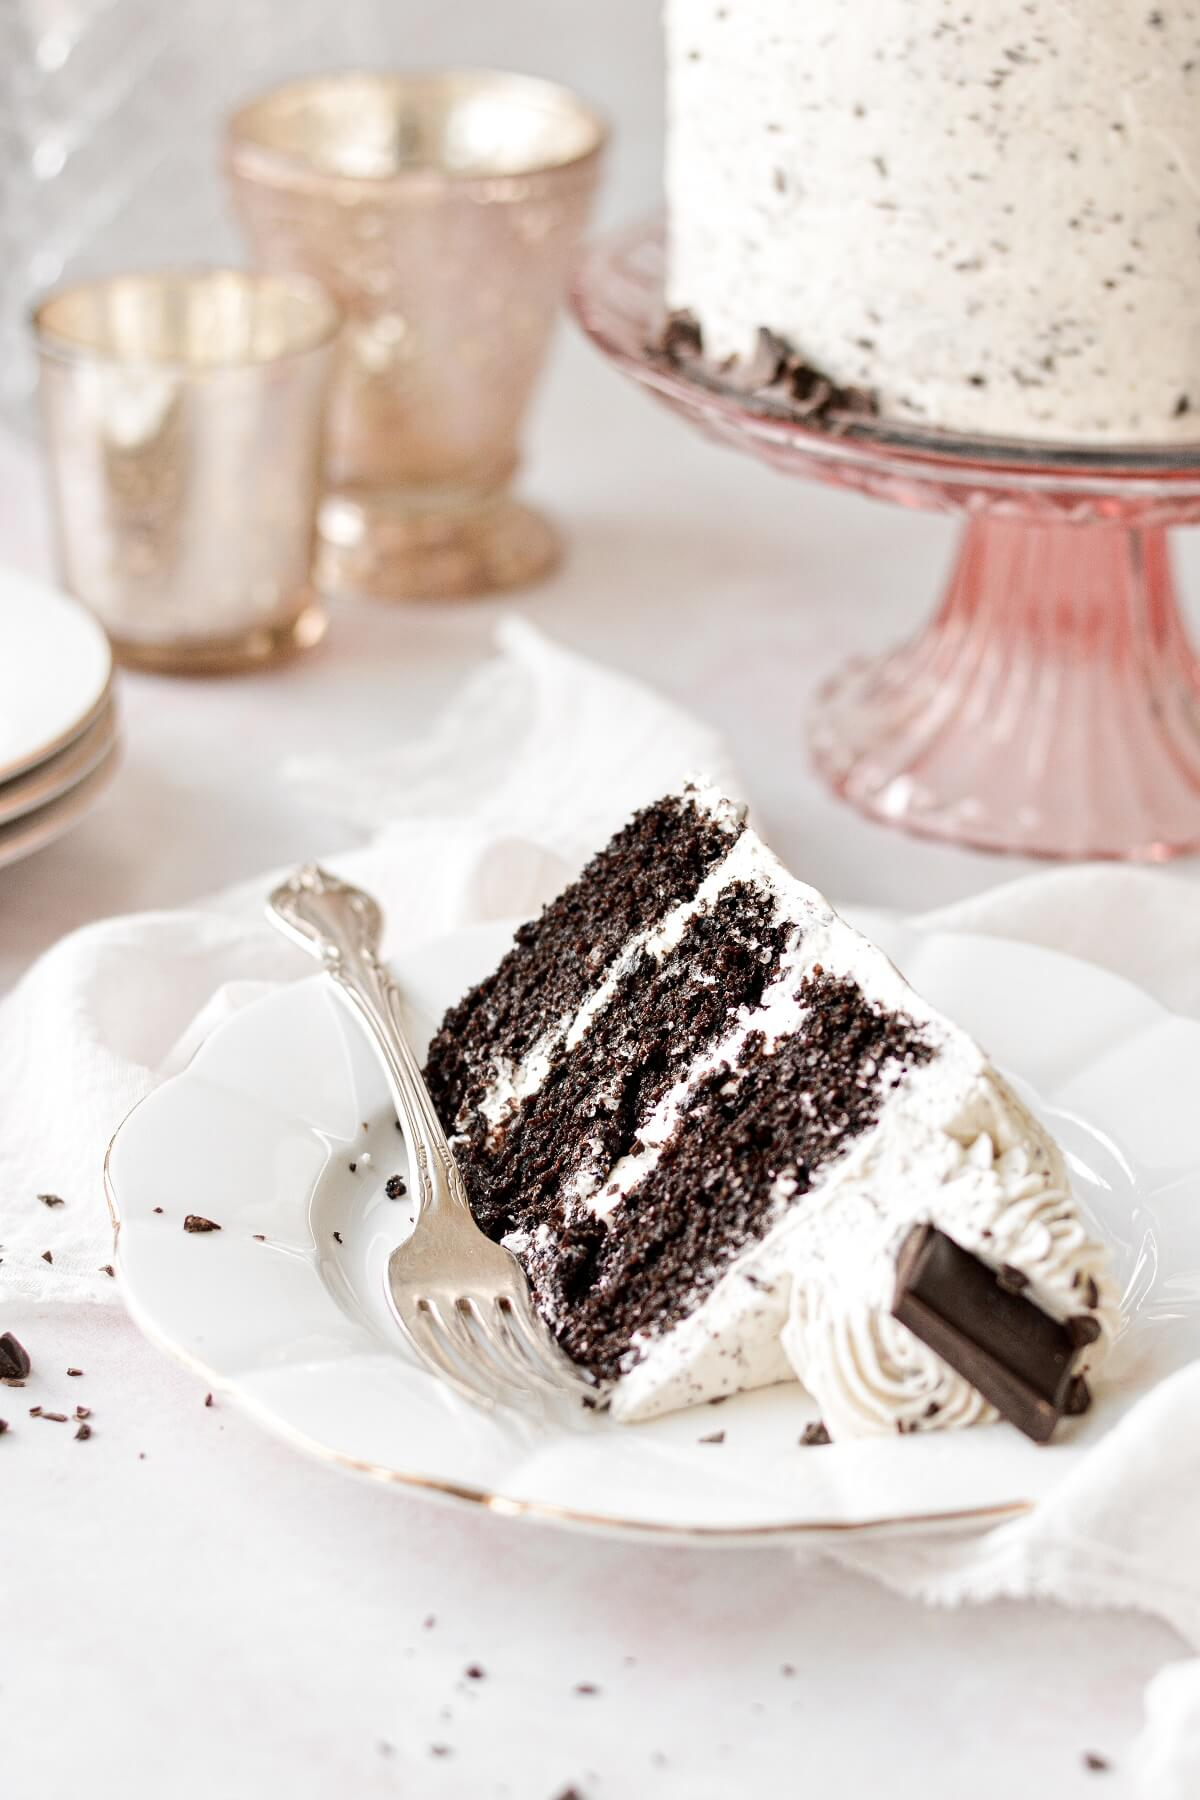 A slice of mint chocolate chip cake on a white plate.